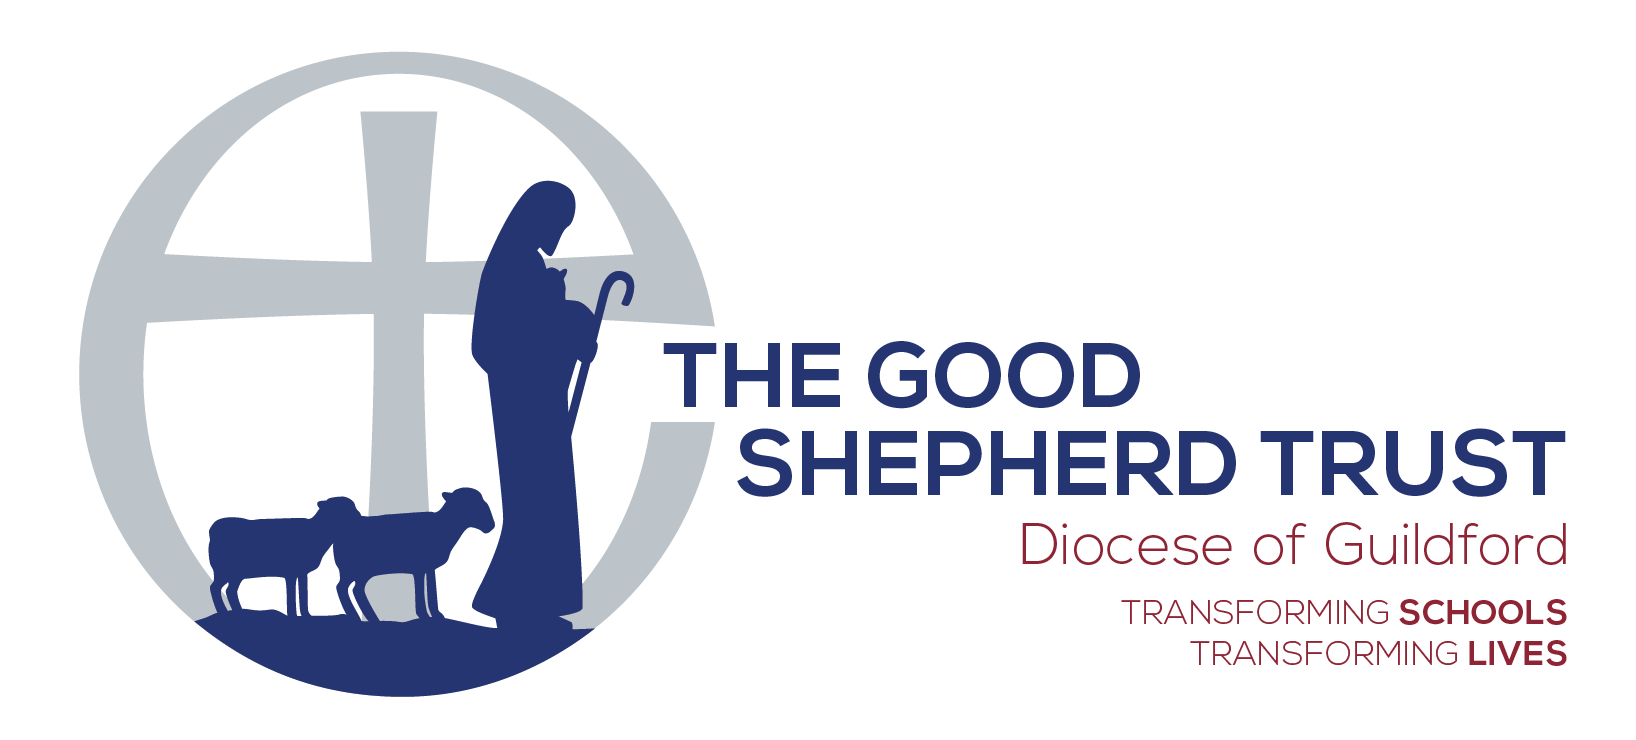 The Good Shepherd Trust